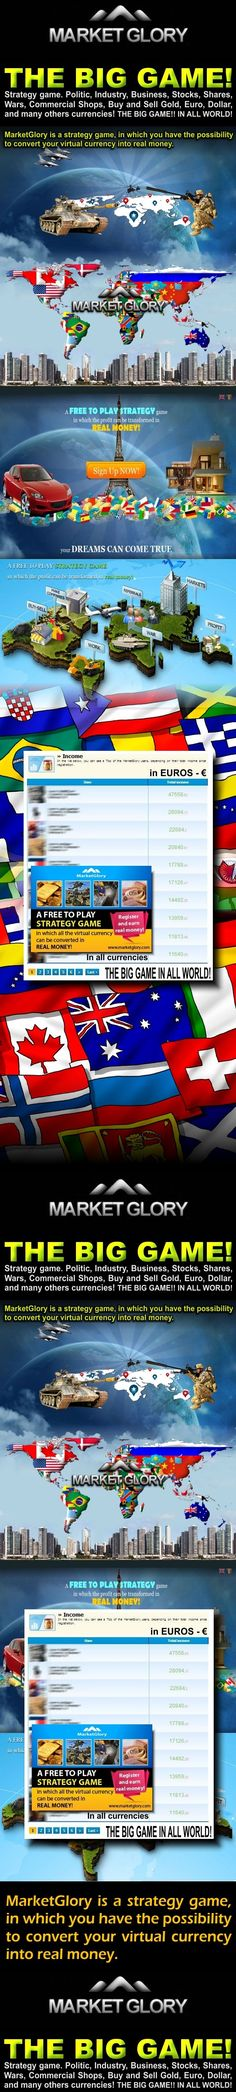 THE BIG GAME! Market Glory * JOIN NOW! Please, visit my presentation page: >>  * Strategy game. Politic, Industry, Business, Stocks, Shares, Wars, Commercial Shops, Buy and Sell Gold, Euro, Dollar, and many others currencies! THE BIG GAME!! IN ALL WORLD! MarketGlory is a strategy game, in which you have the possibility to convert your virtual currency into real money. >